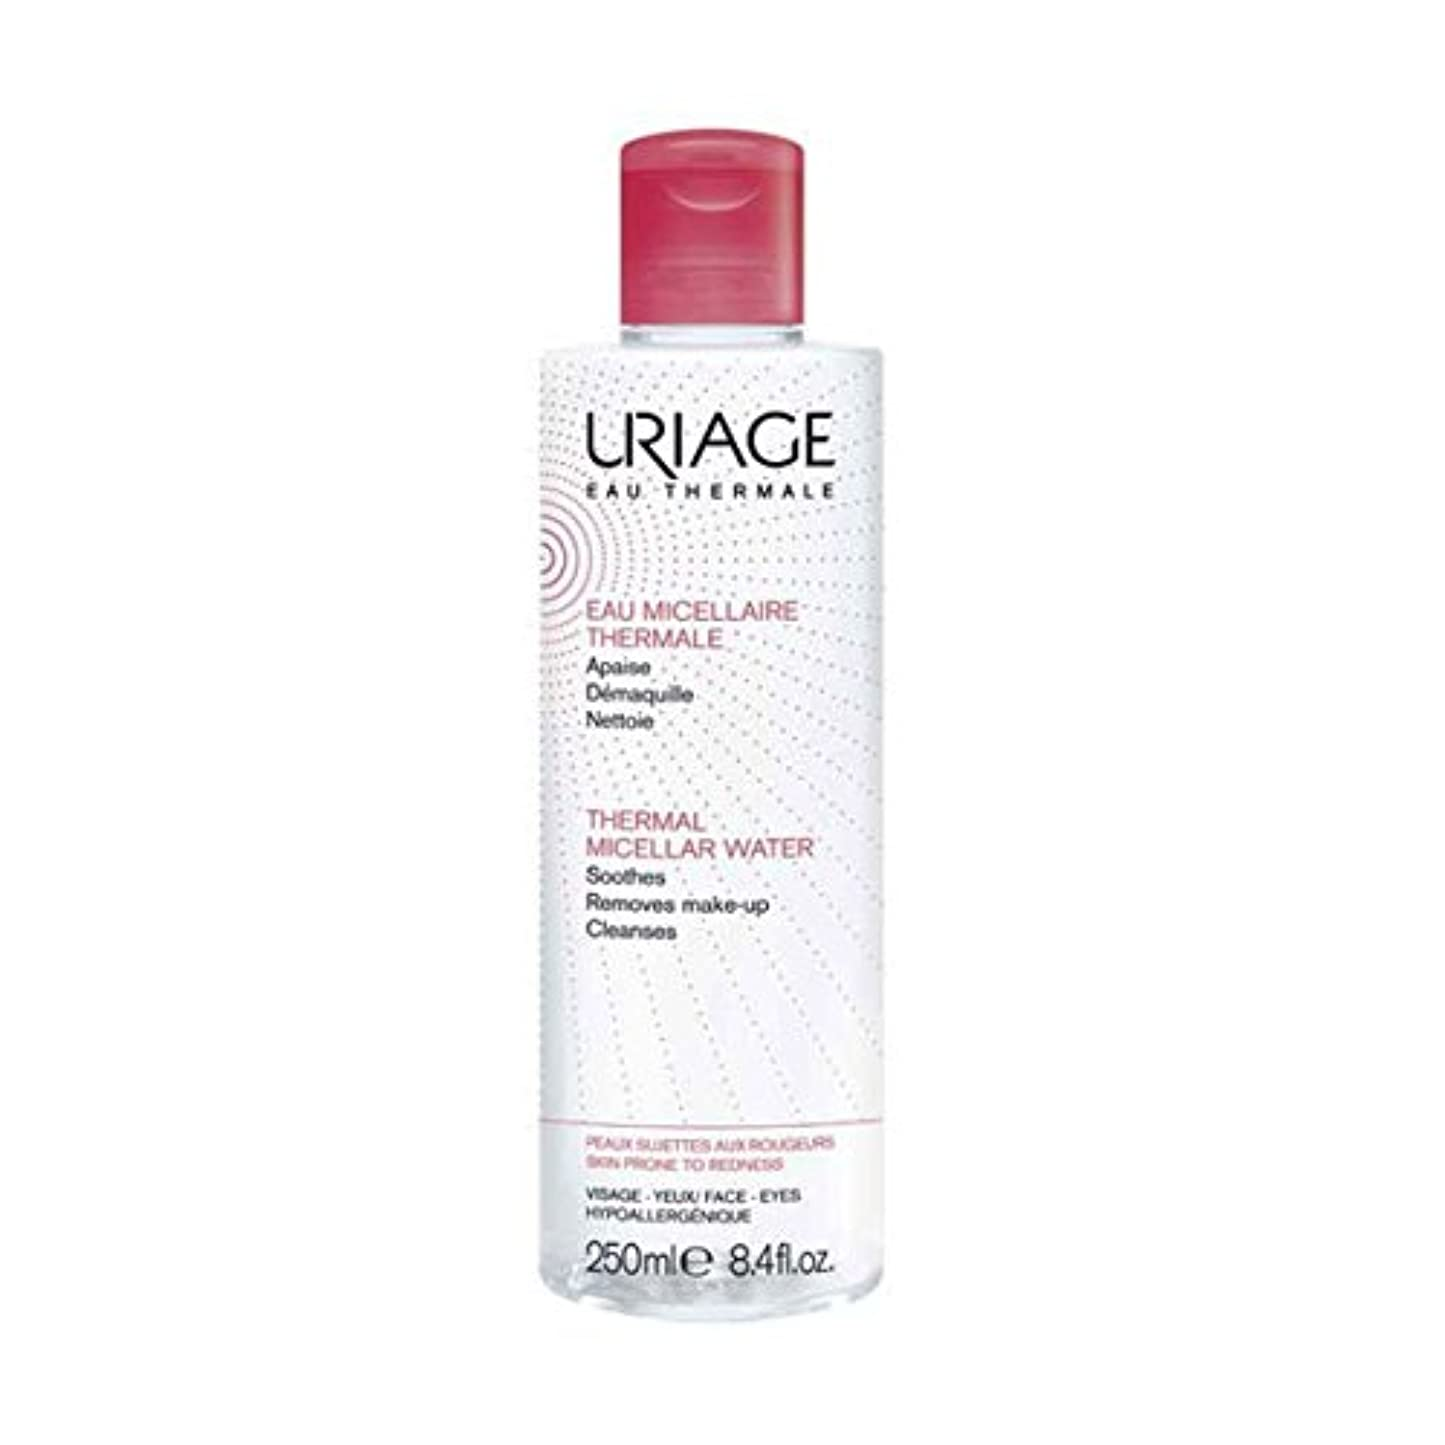 Uriage Thermal Micellar Water Skin Prone To Redness 250ml [並行輸入品]